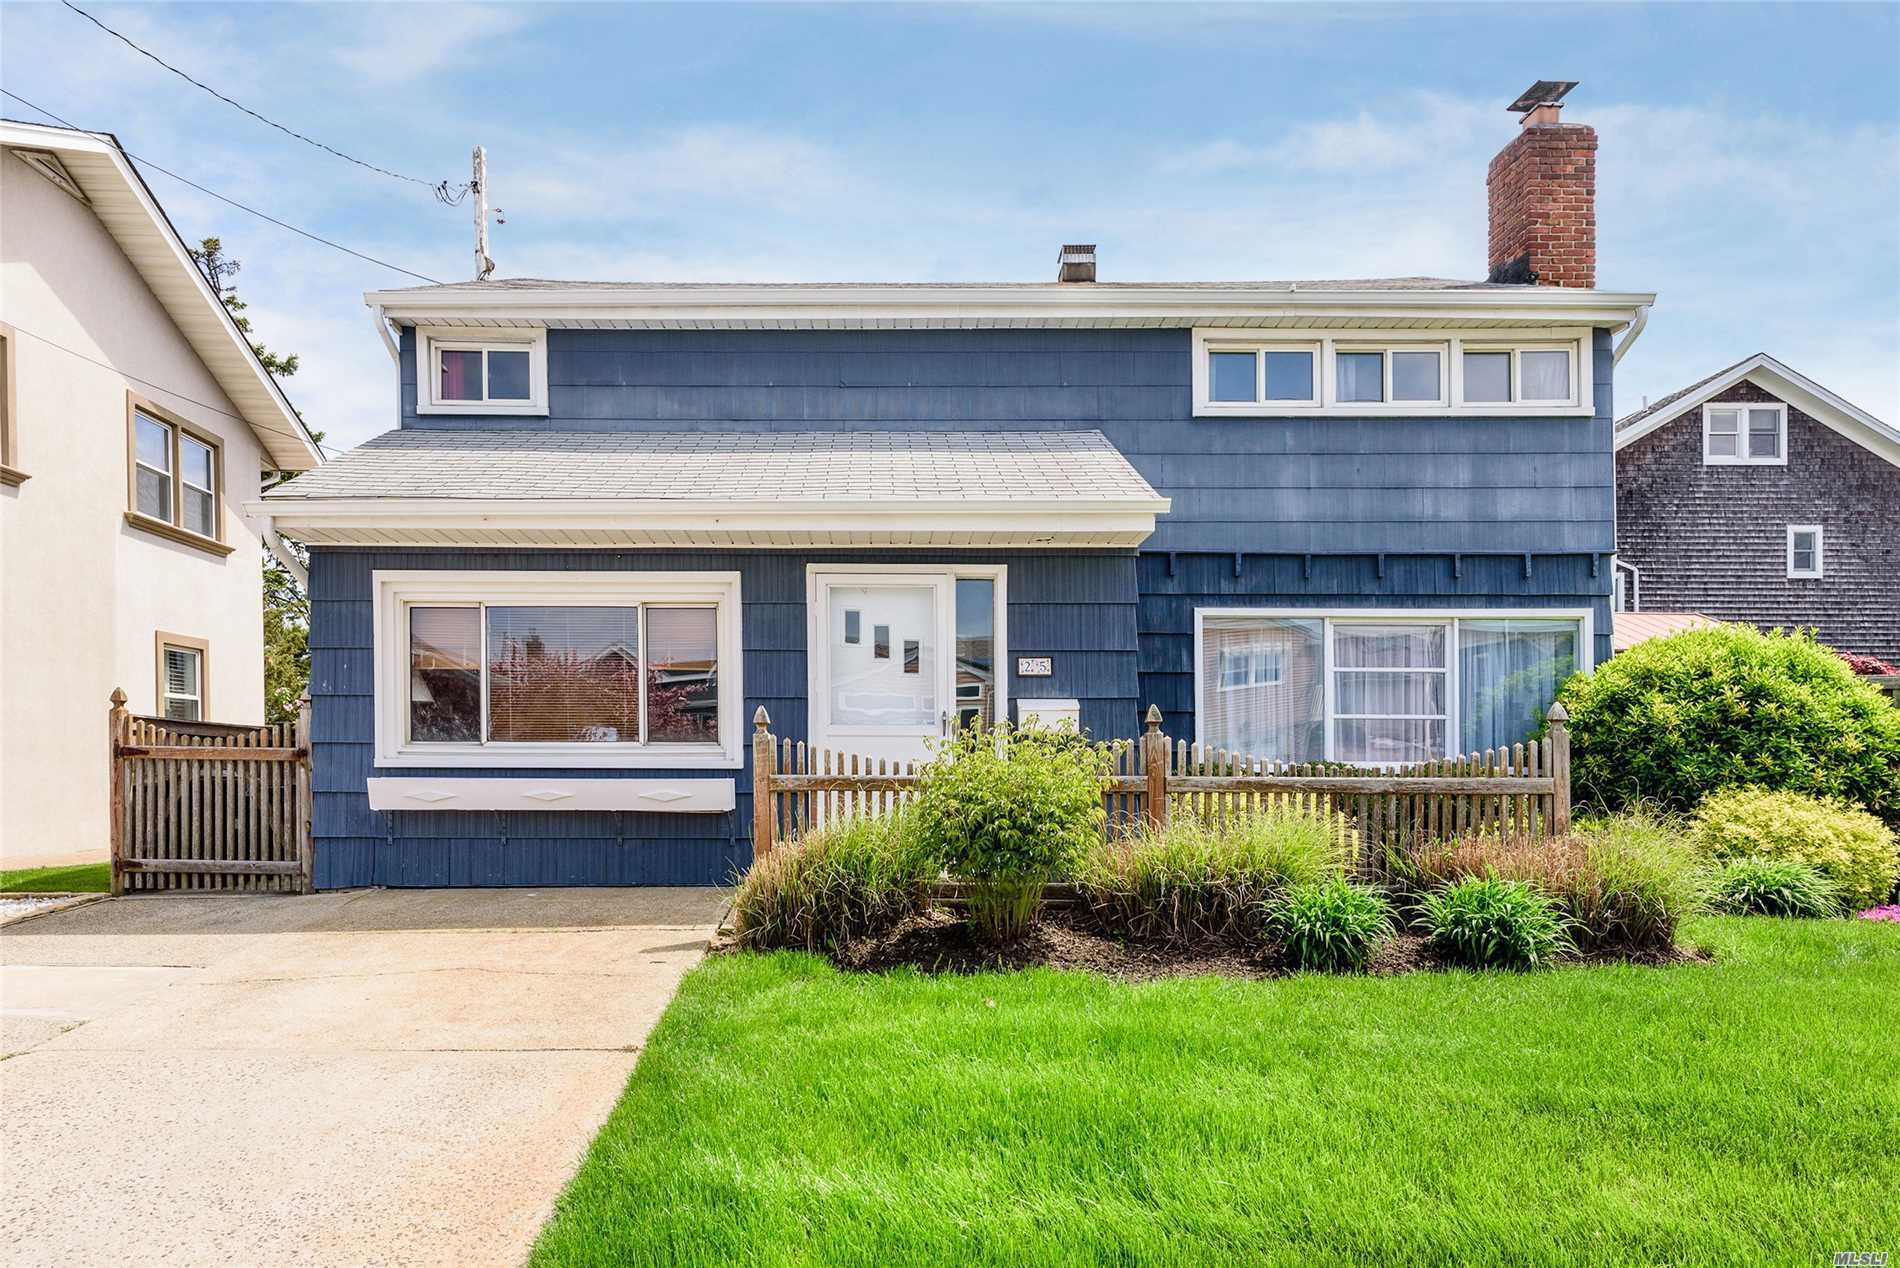 25 Pinehurst St - Lido Beach, New York